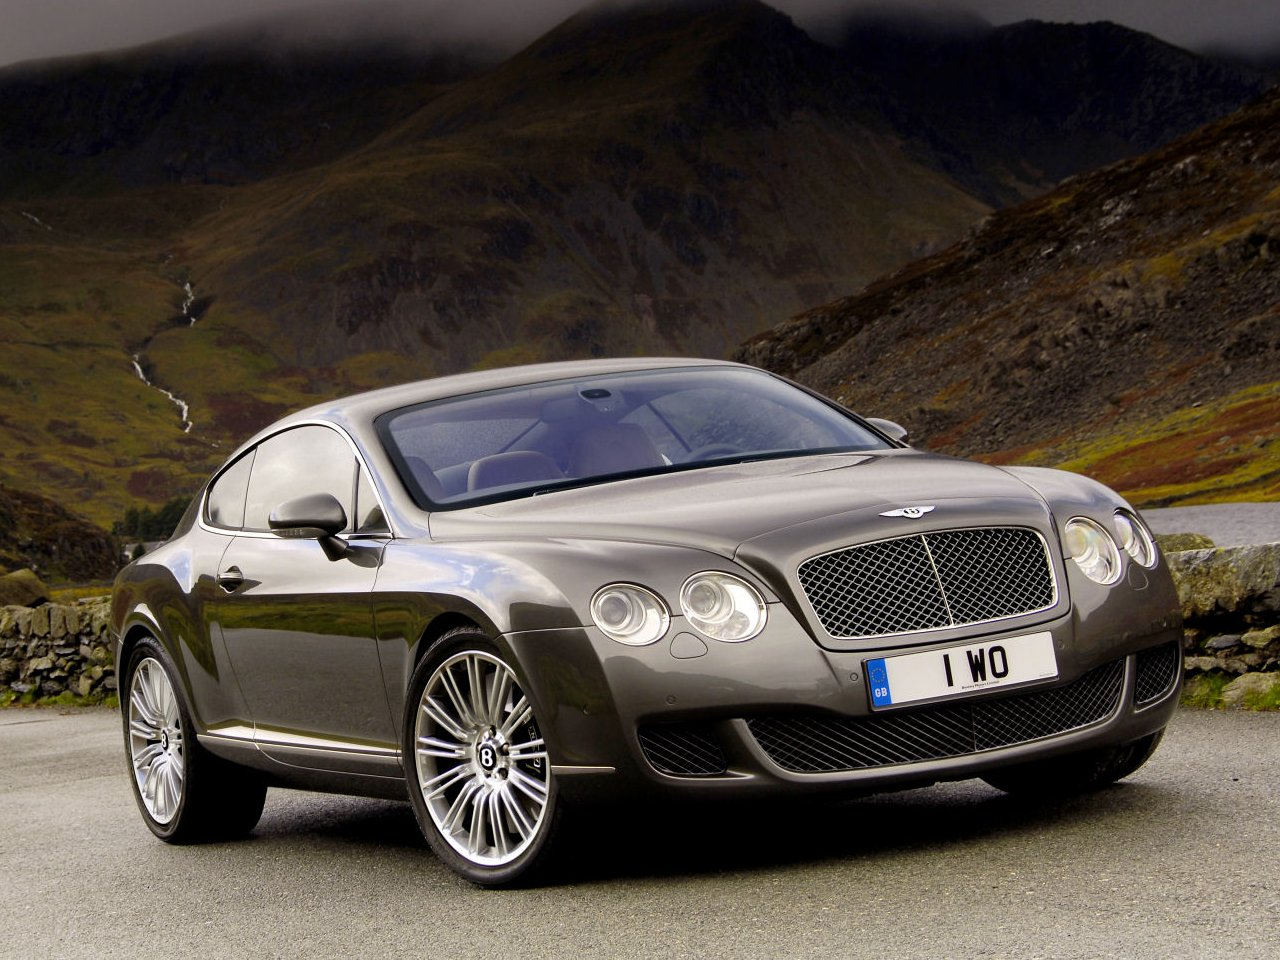 Speedo Car Wallpapers Bentley Continental Gt New Cars